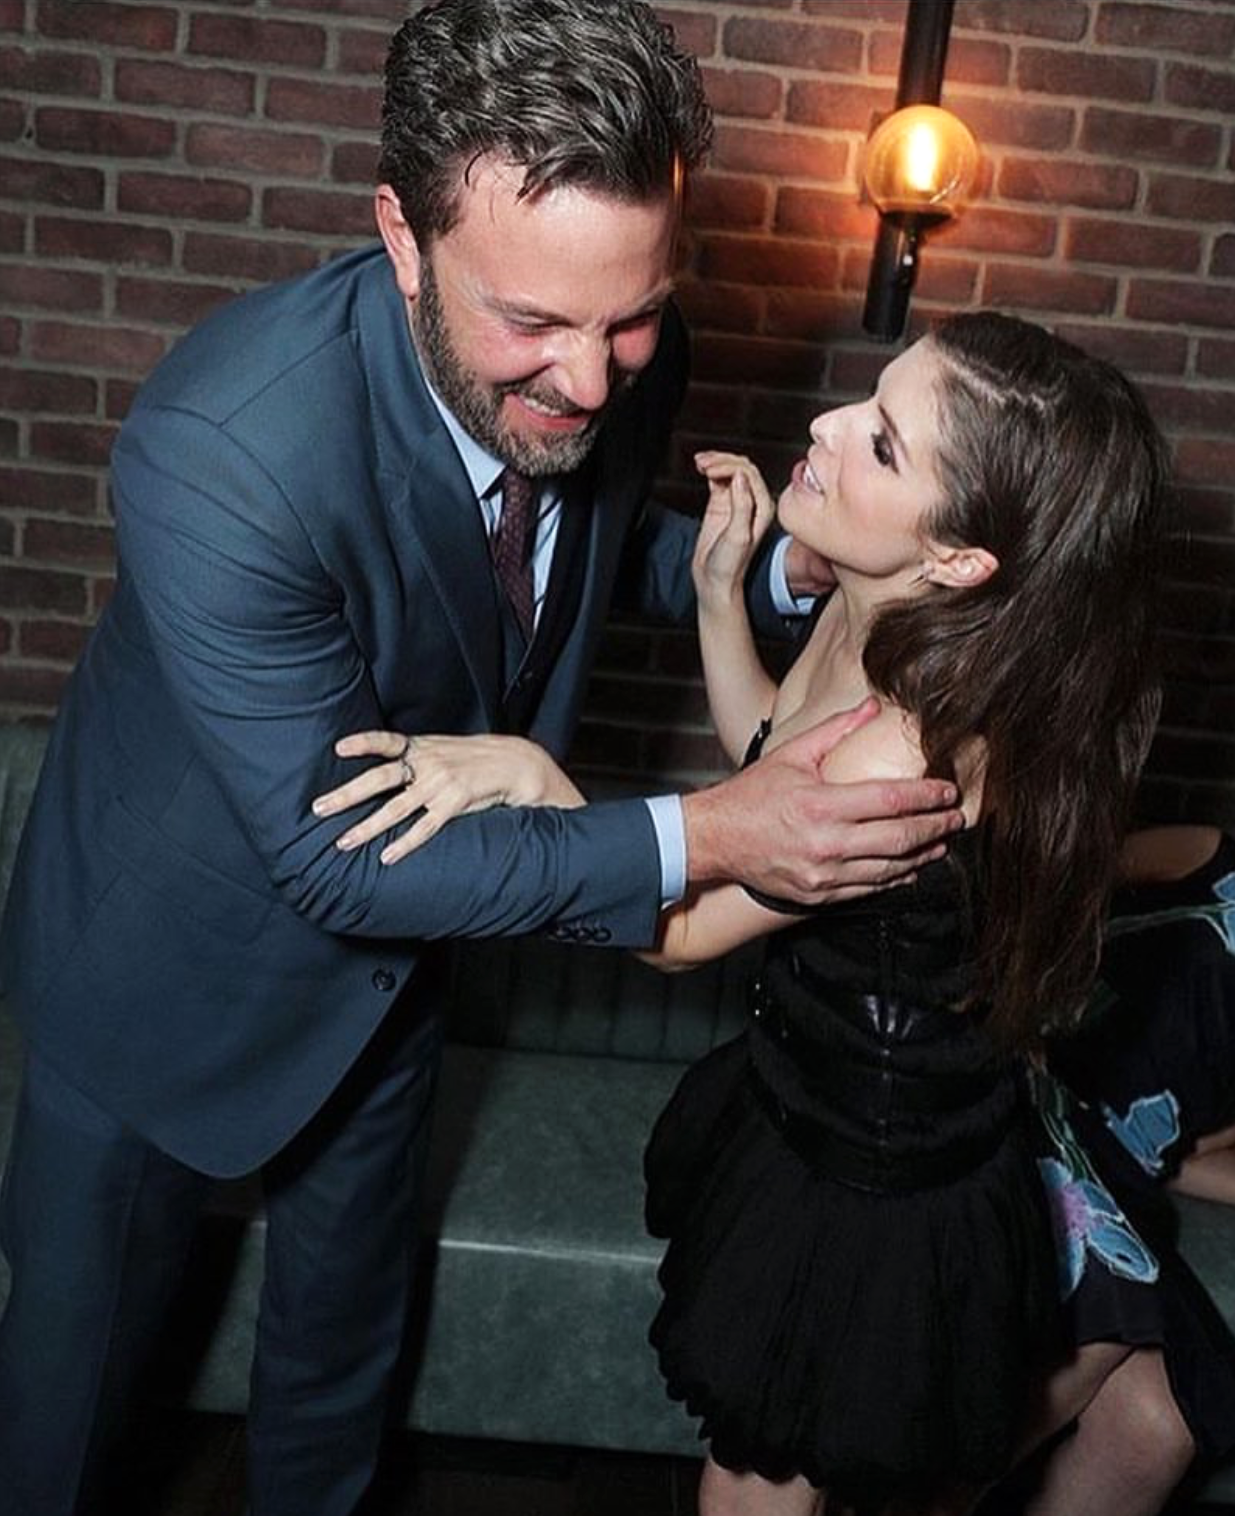 the-accountant-movie-premiere-ben-affleck-anna-kendrick-party